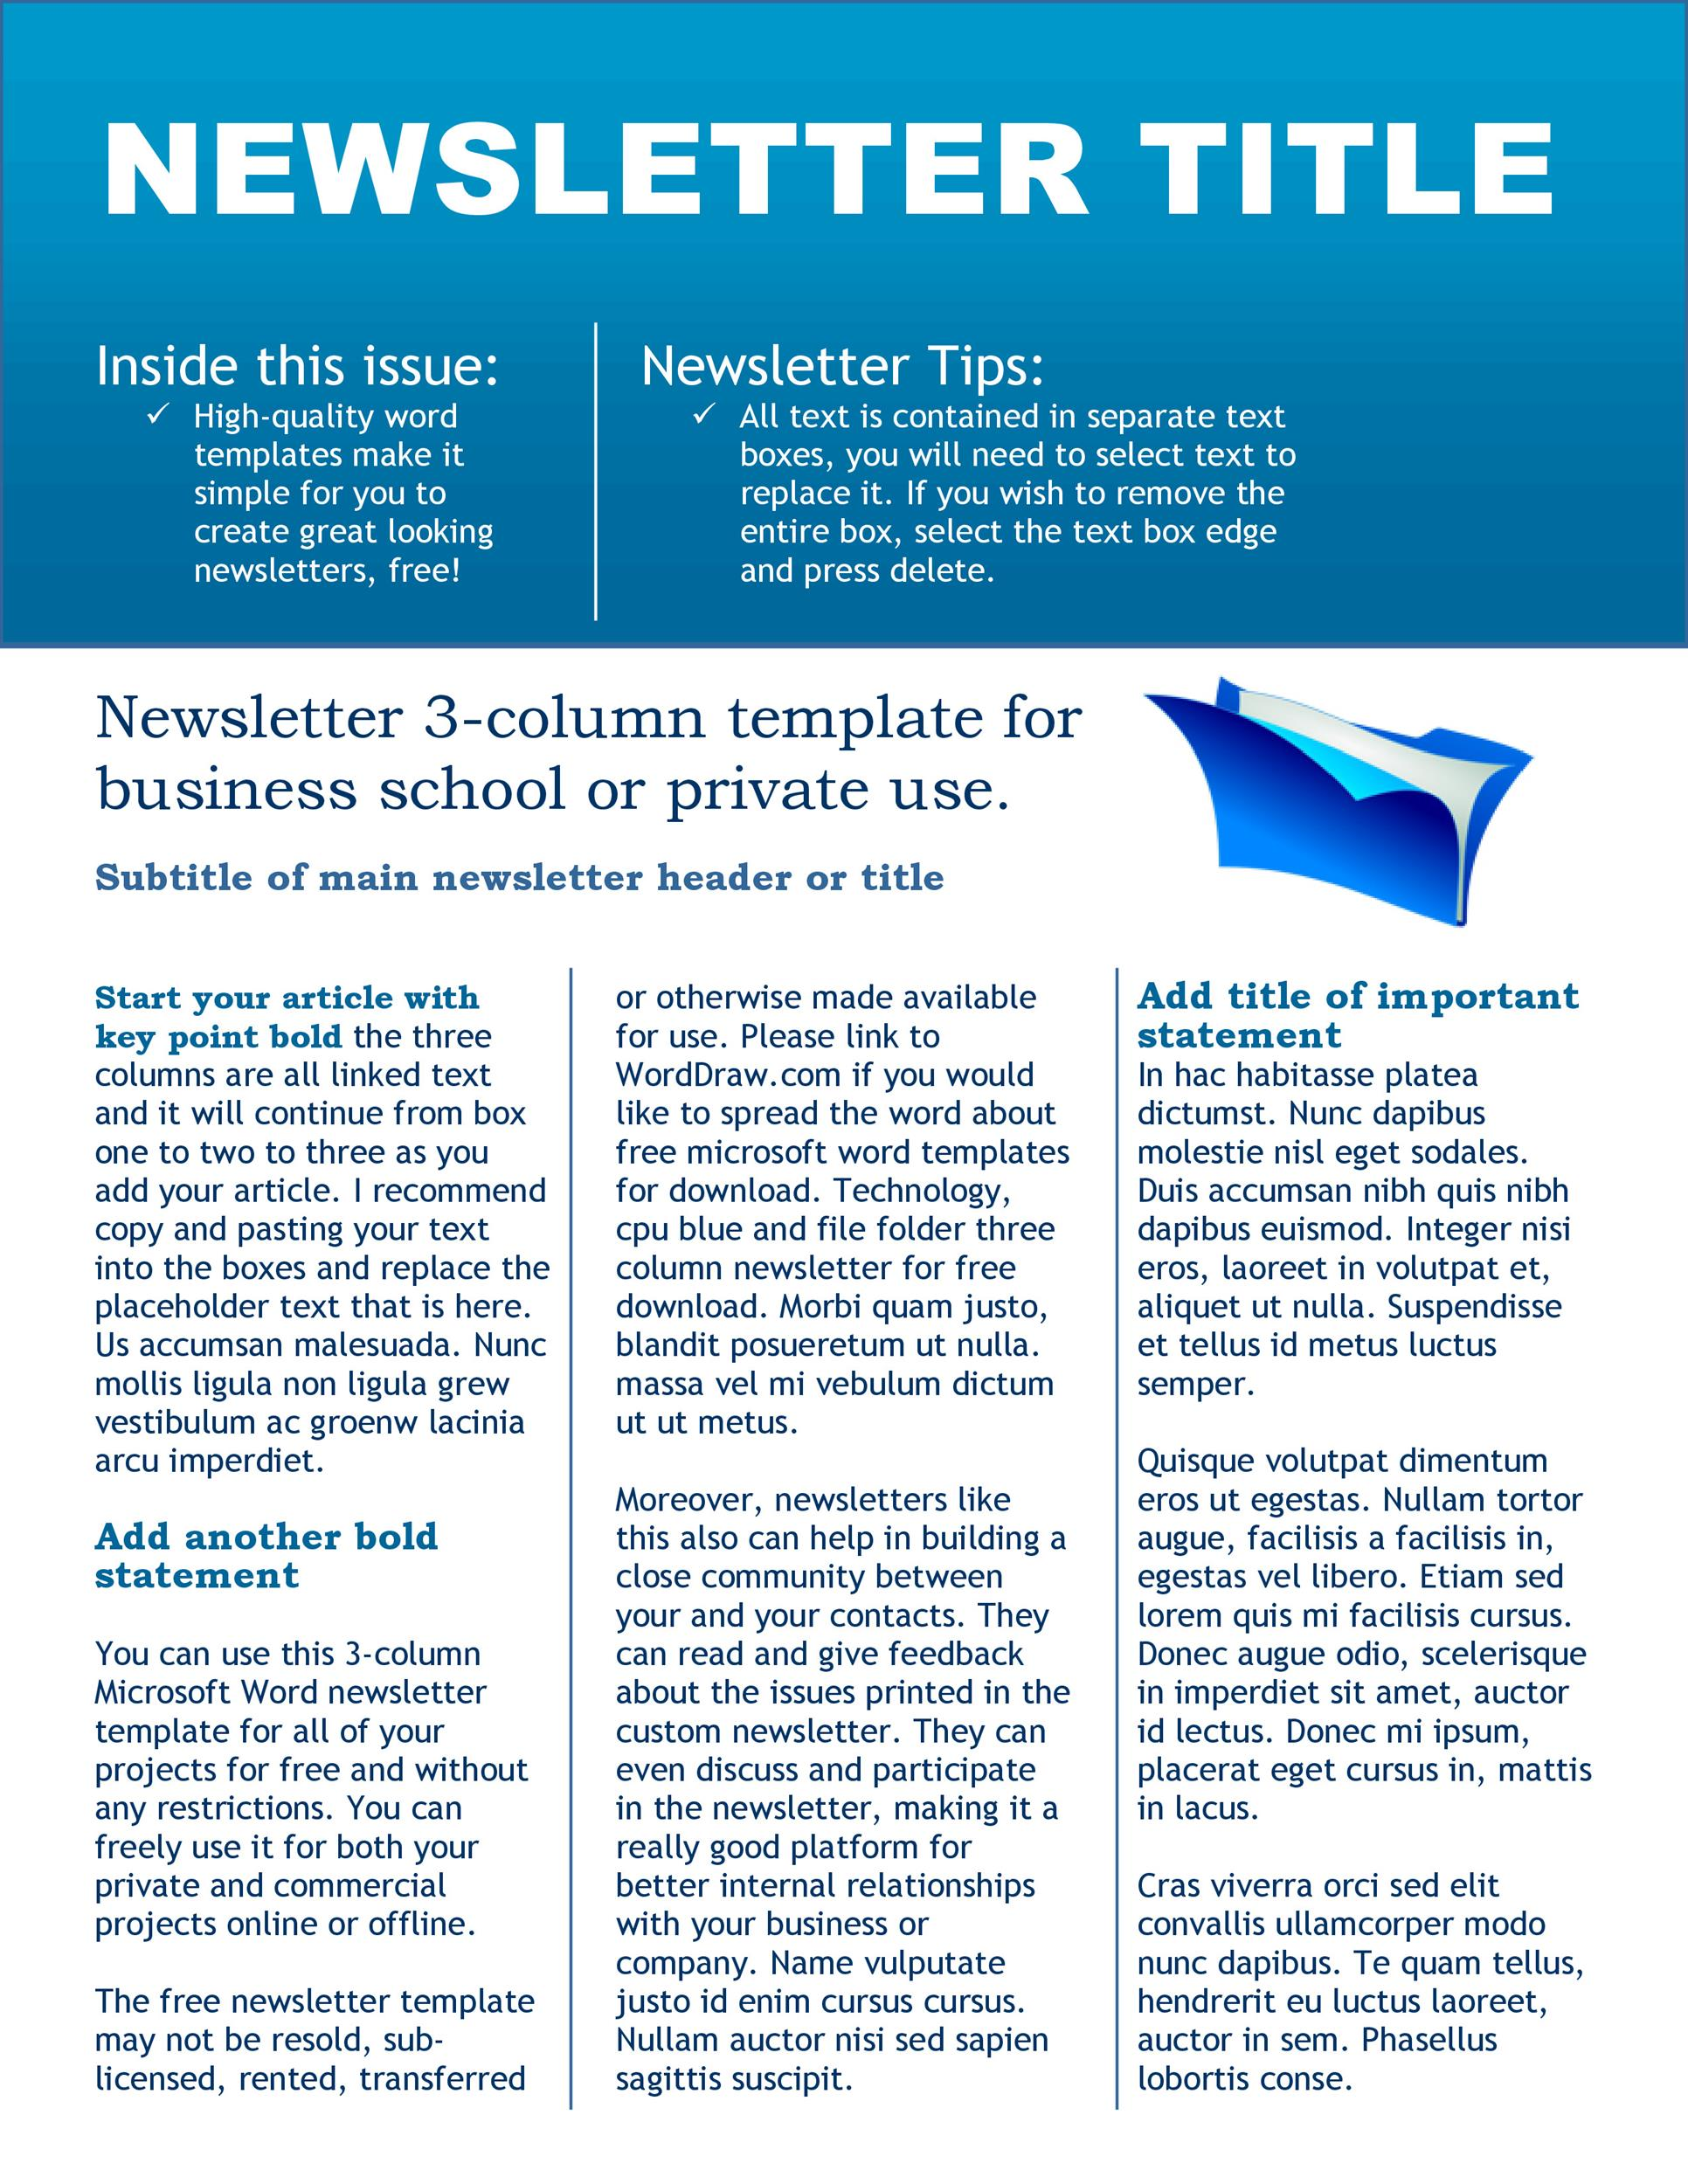 50 FREE Newsletter Templates for Work, School and Classroom - Newsletter Templates Free Word